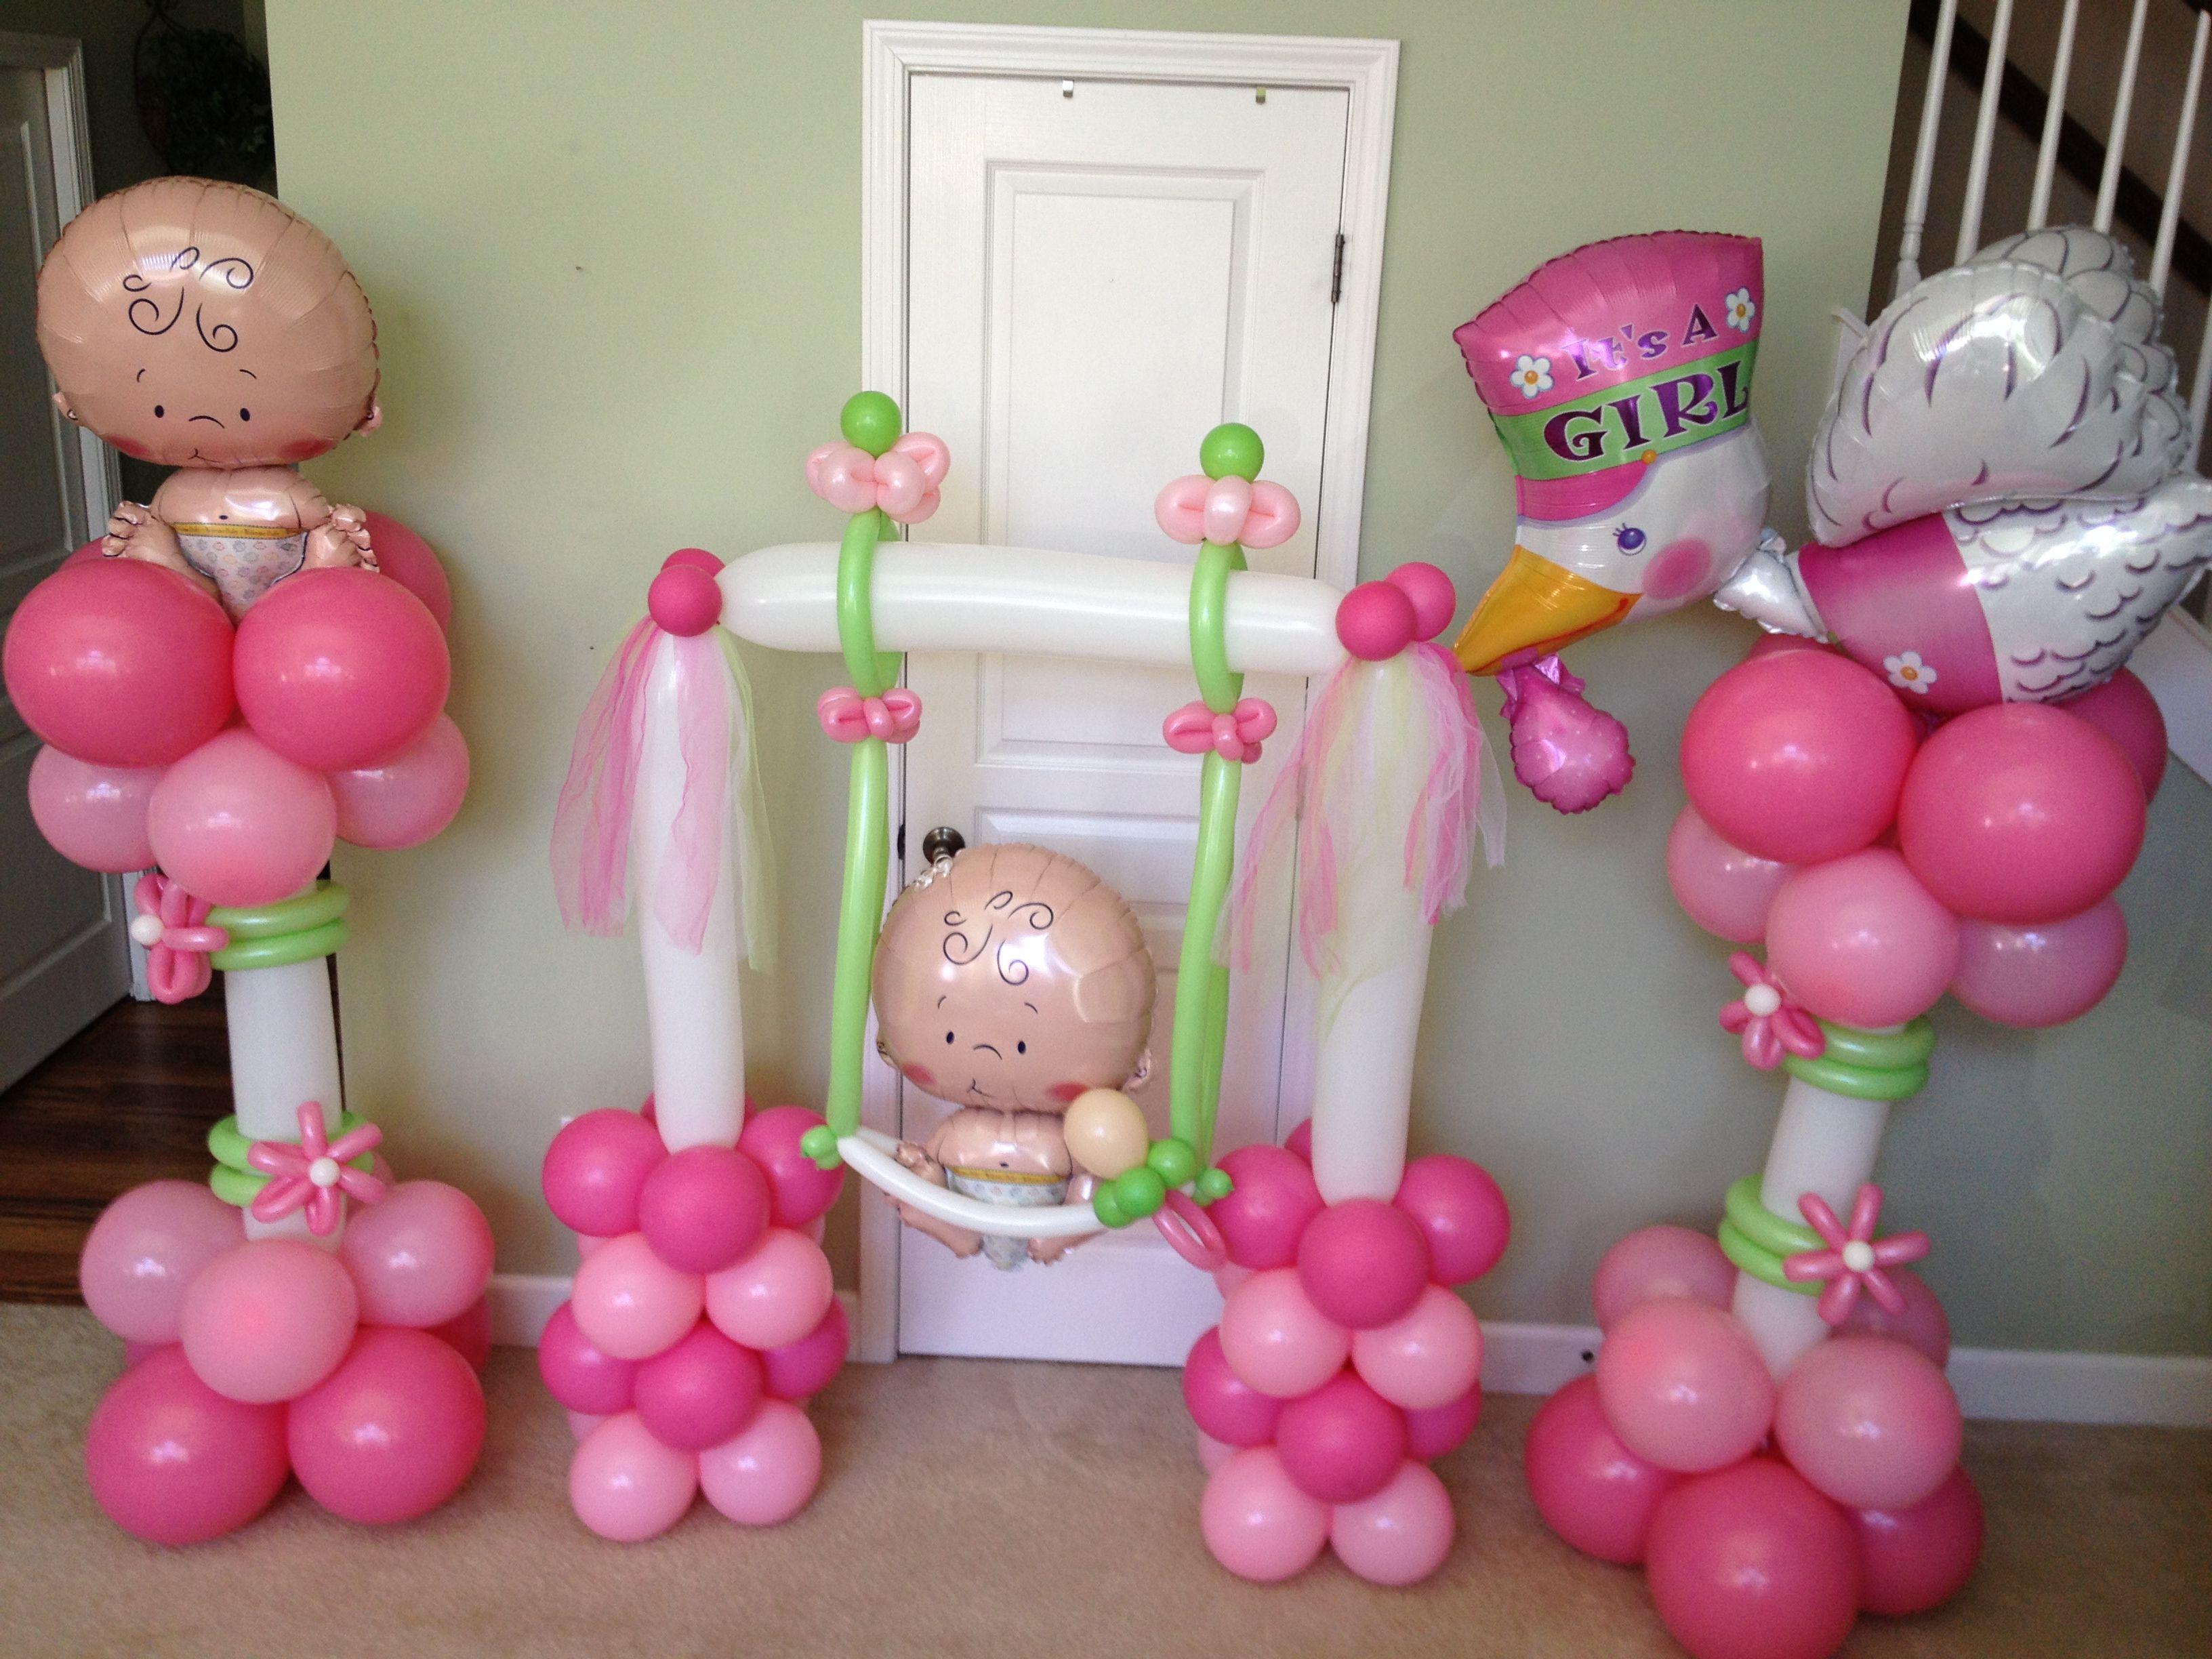 Baby girl balloon decorations baby shower balloons for Baby girl shower decoration